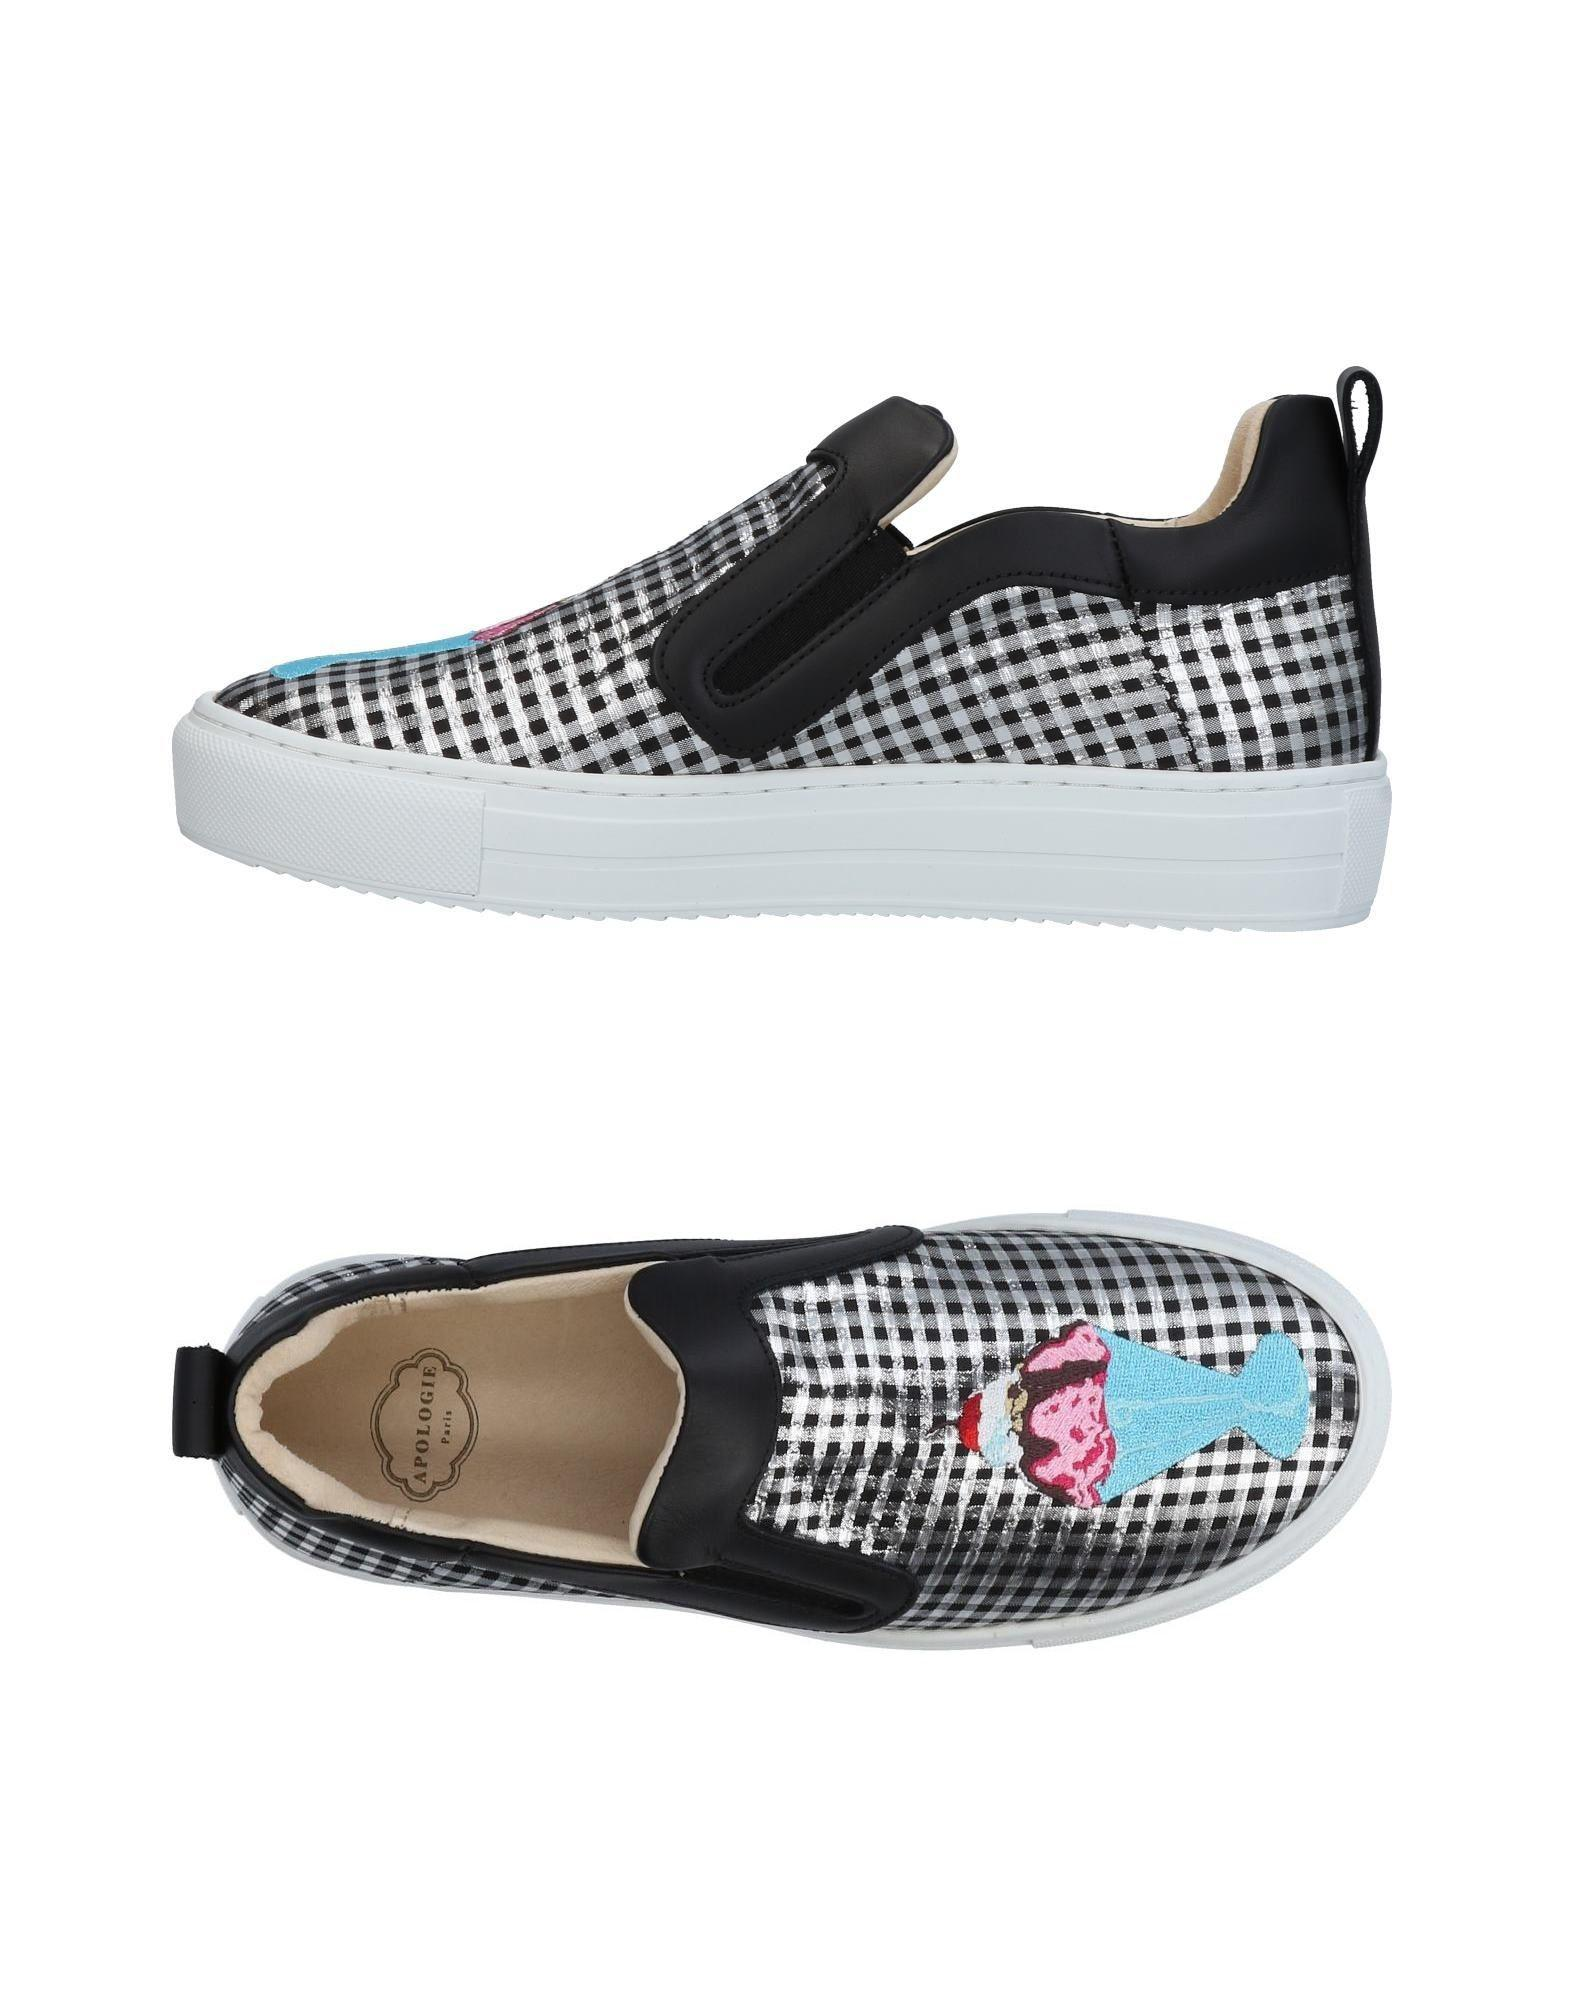 FOOTWEAR - Low-tops & sneakers Apologie Pay With Paypal Sale Online Buy Cheap Low Shipping Browse Online Discount Low Shipping f66CNUJ4dm